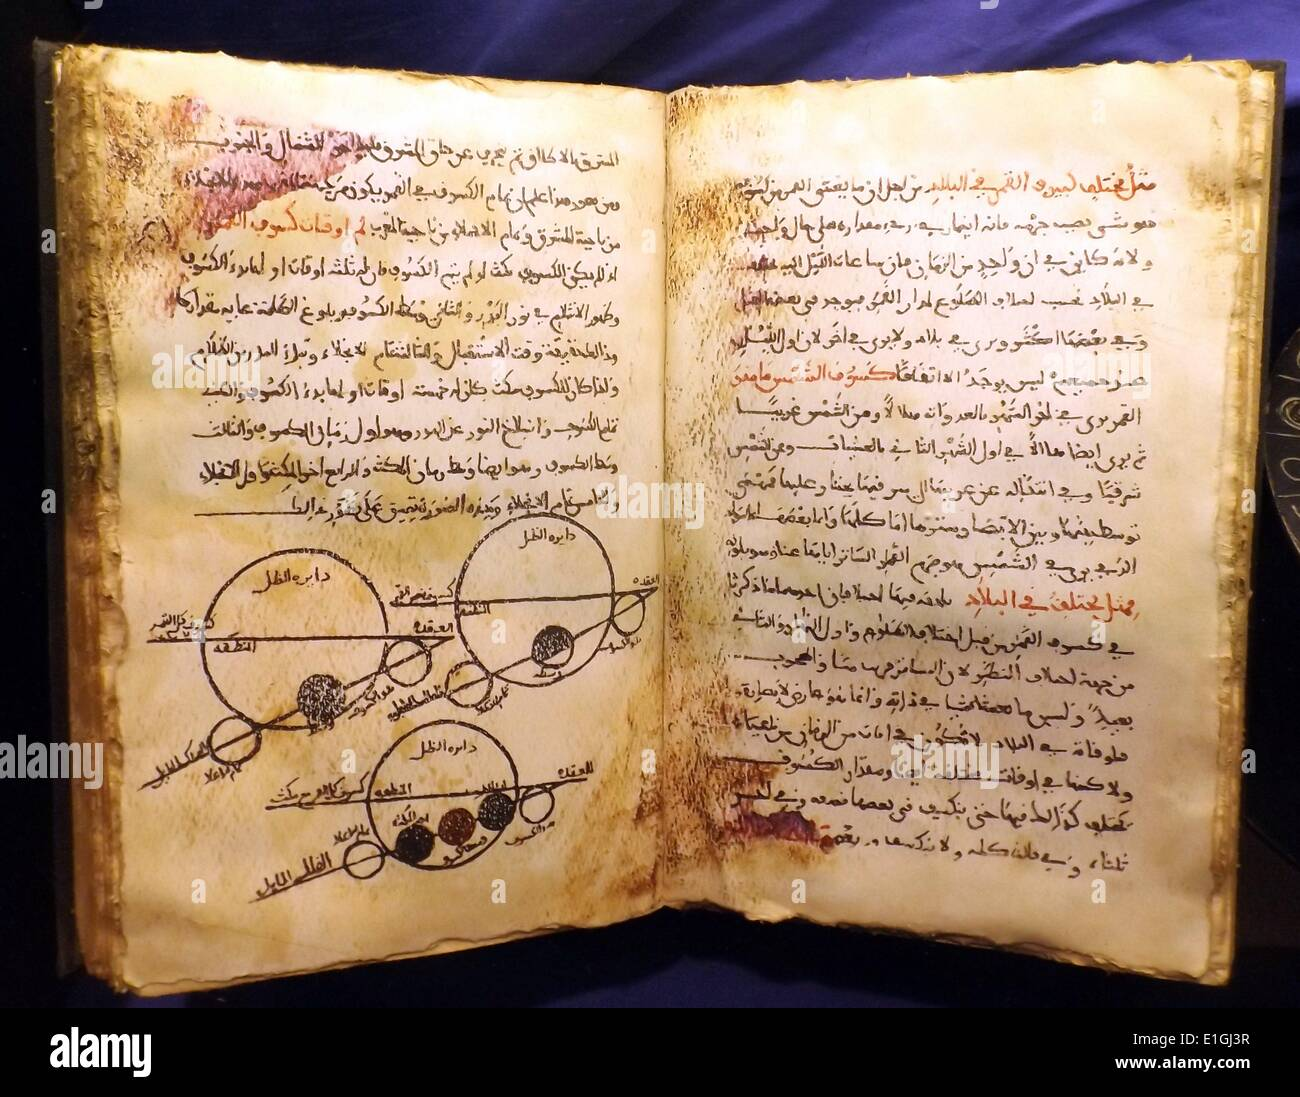 Open replica book of Biruni's astronomical encyclopaedia 'Kitab at-Qanun al-Mas'udi', showing planetary motions. - Stock Image